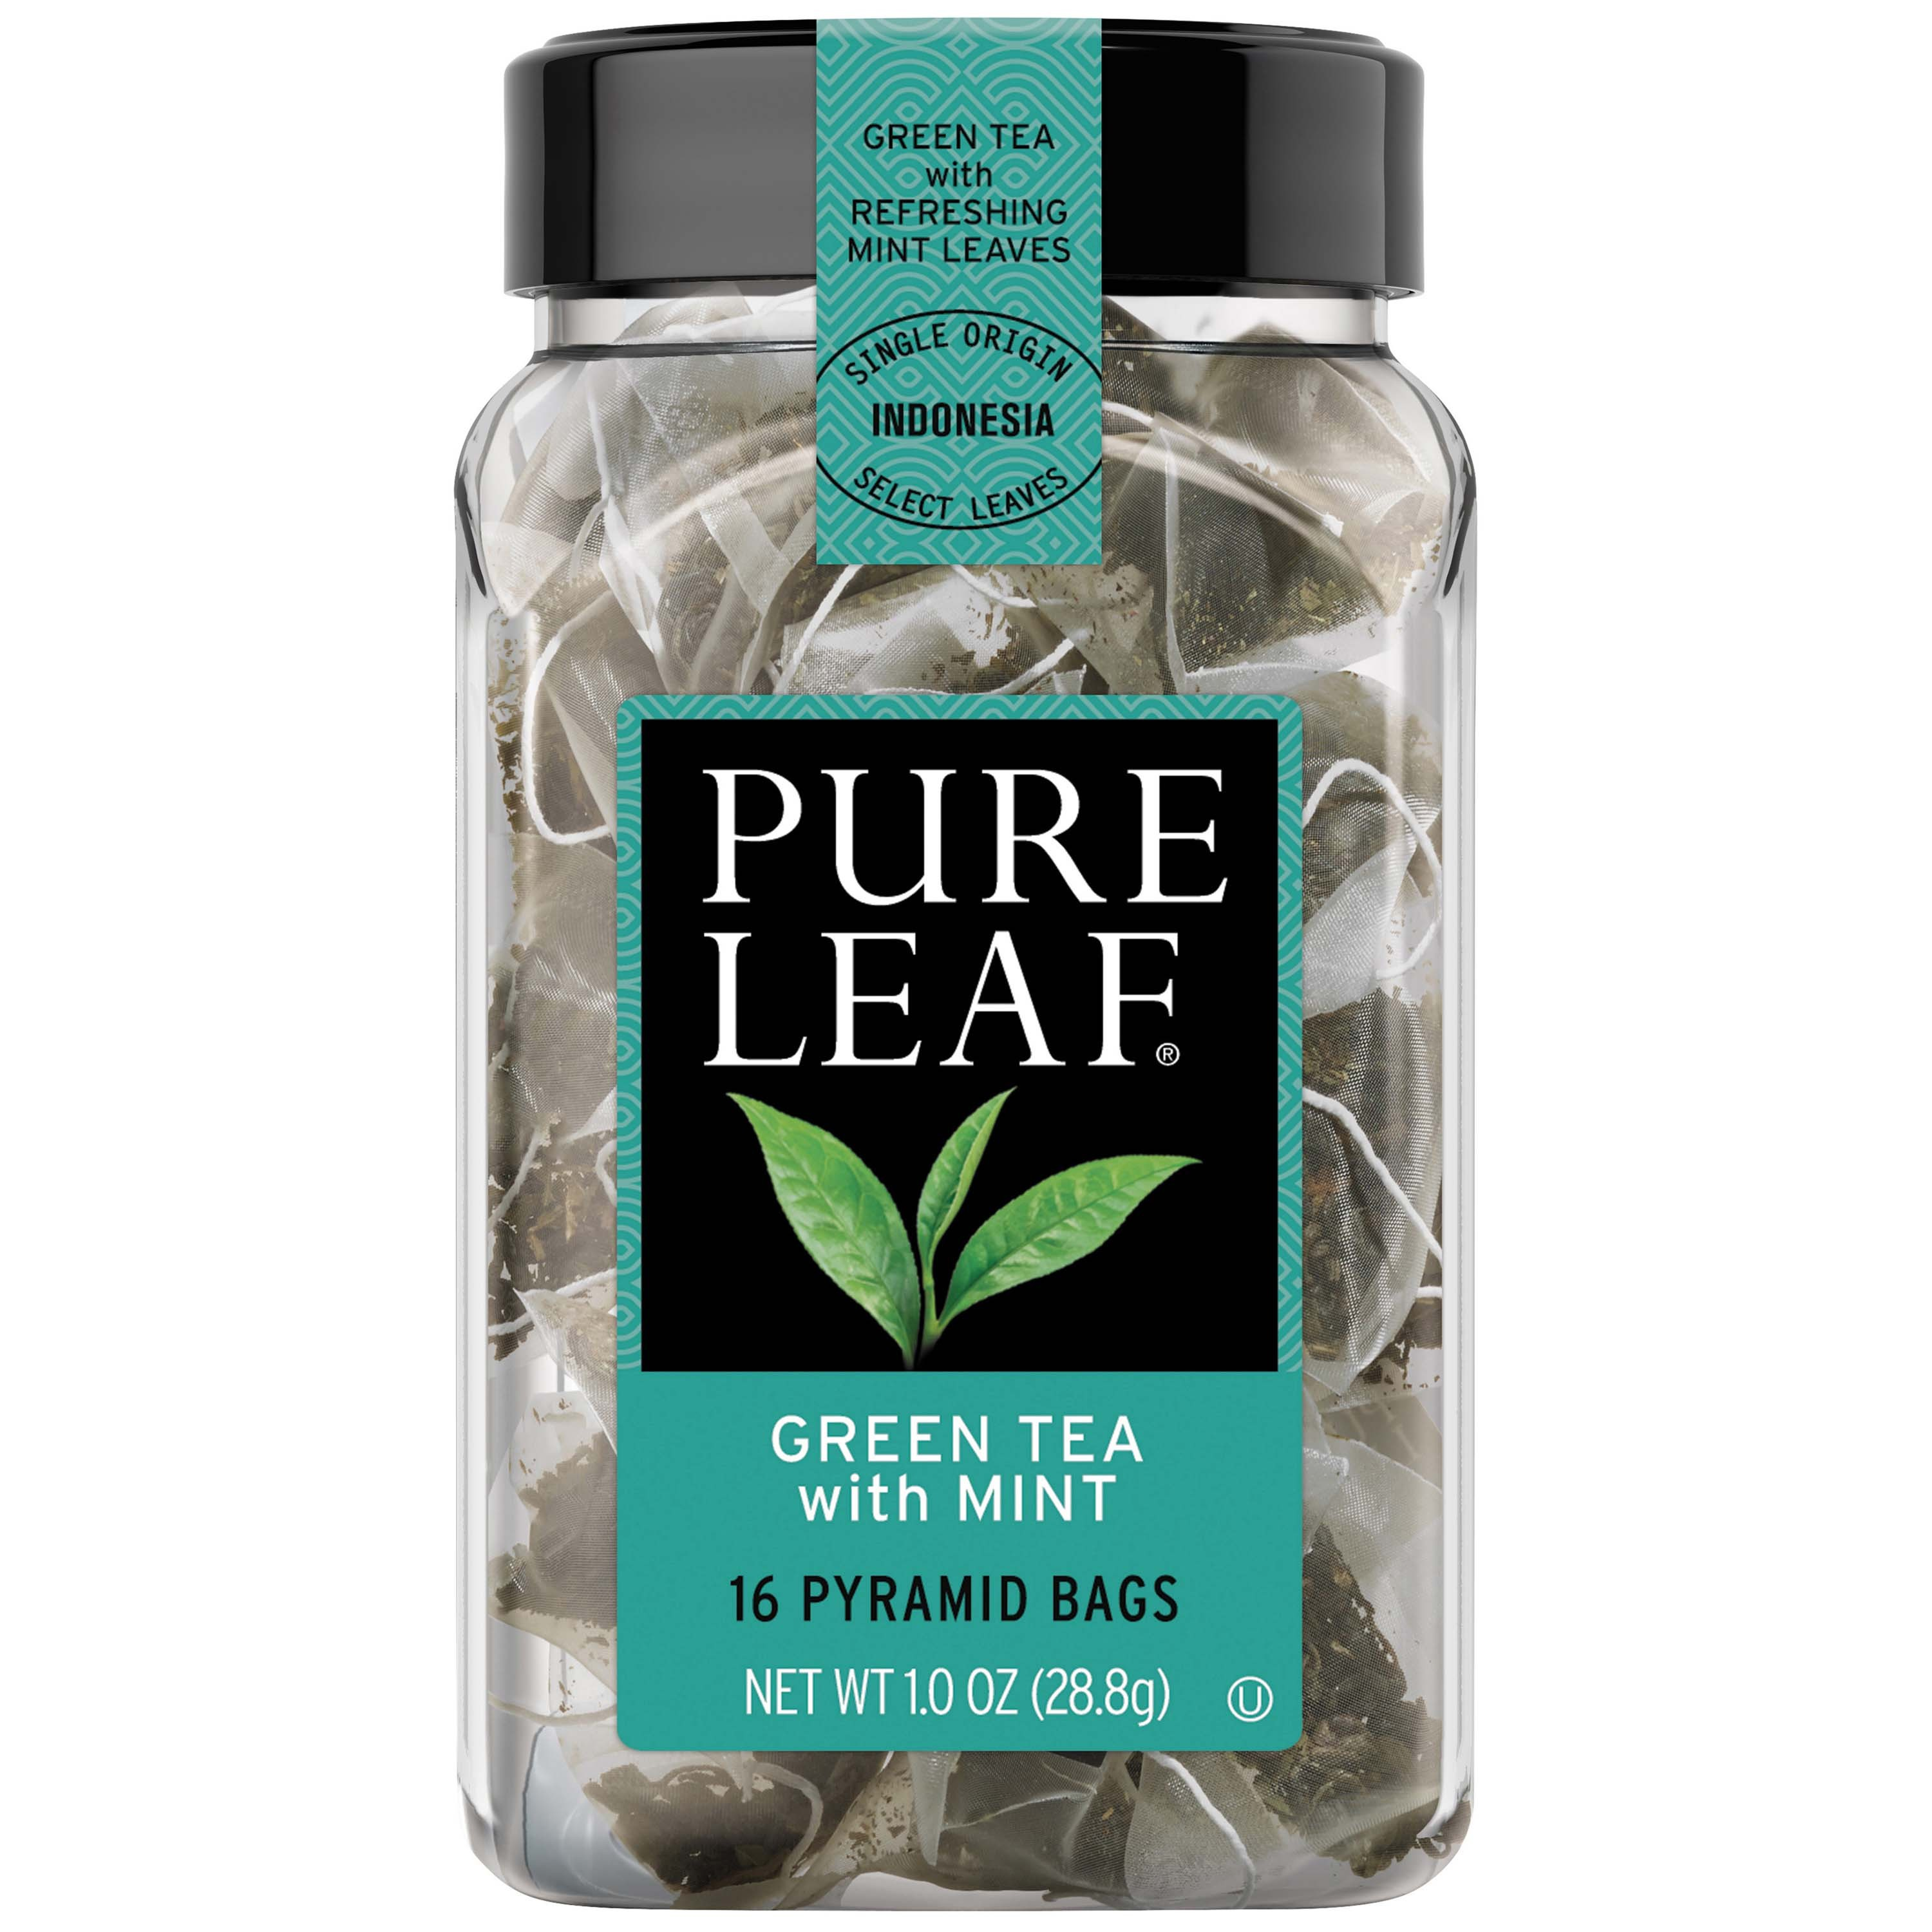 Assorted Teas & Condiments by Pure Leaf, Lipton & More, 14,/2,101 Cases, Ext. Retail $57,944, Newville, PA